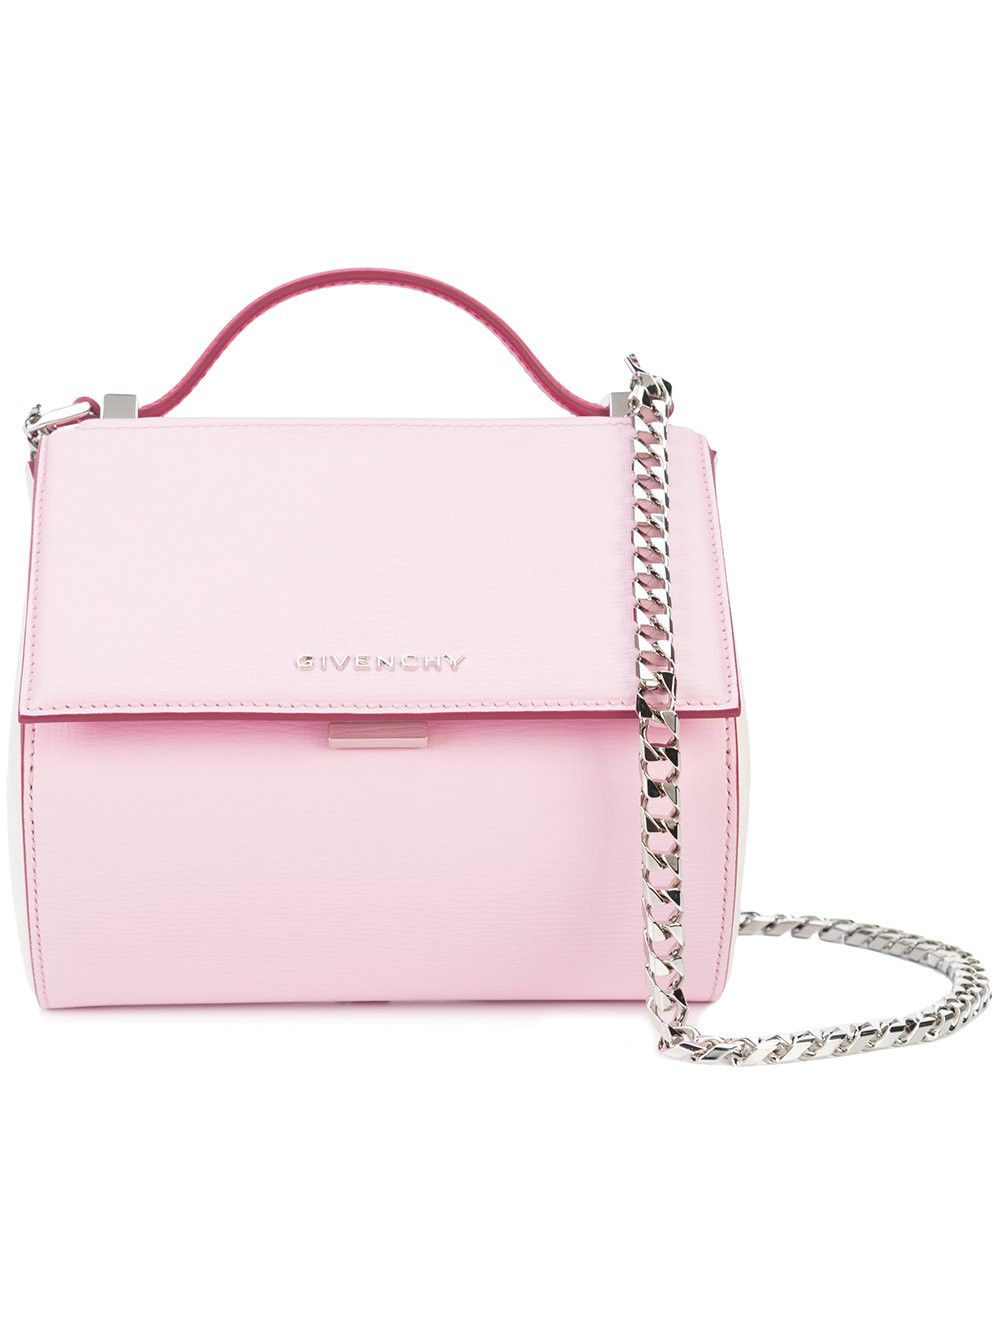 ccdfe687bfe1 GIVENCHY Pandora Box bag.  givenchy  bags  shoulder bags  leather ...